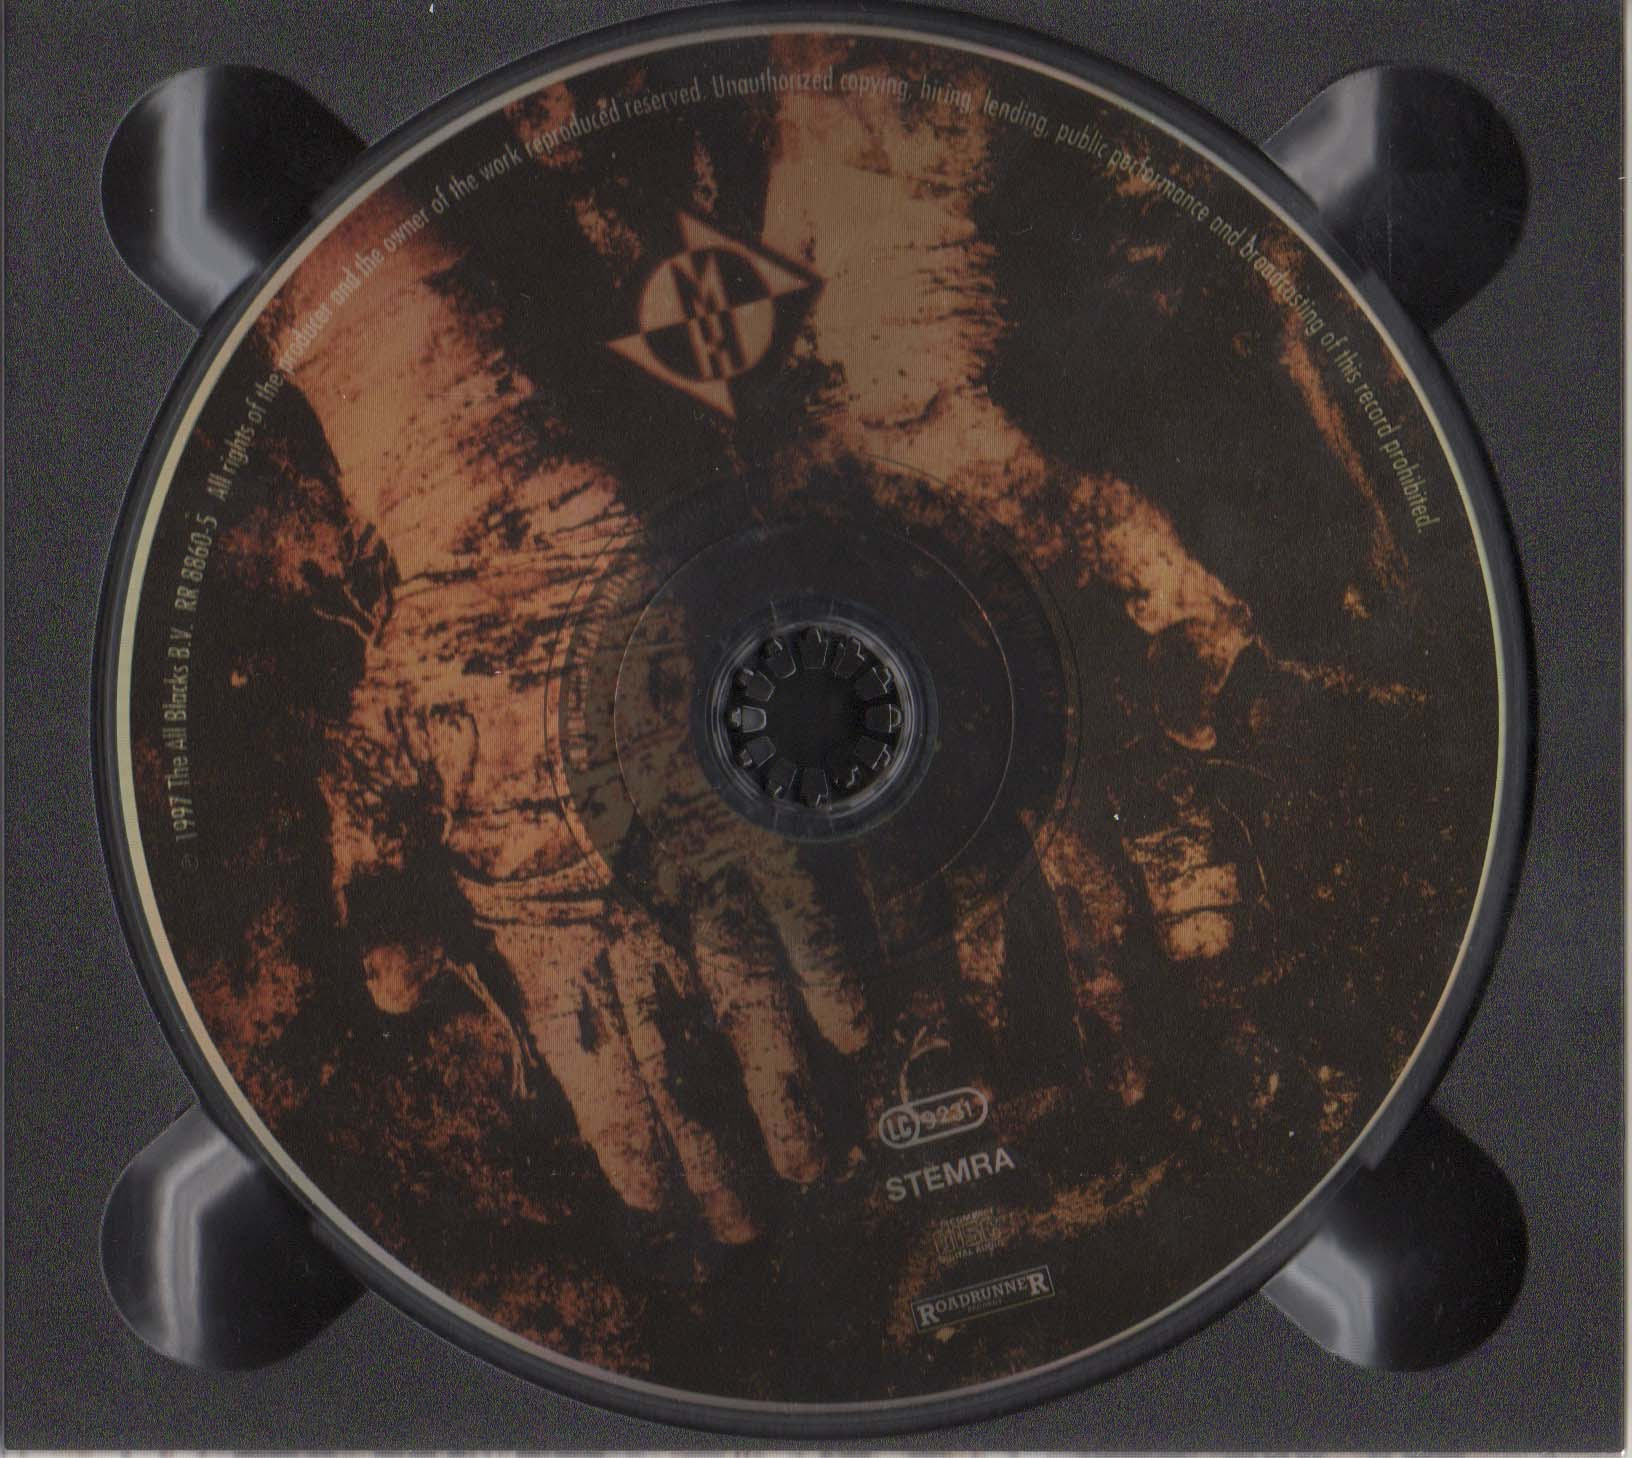 TMTC Digipak Disc